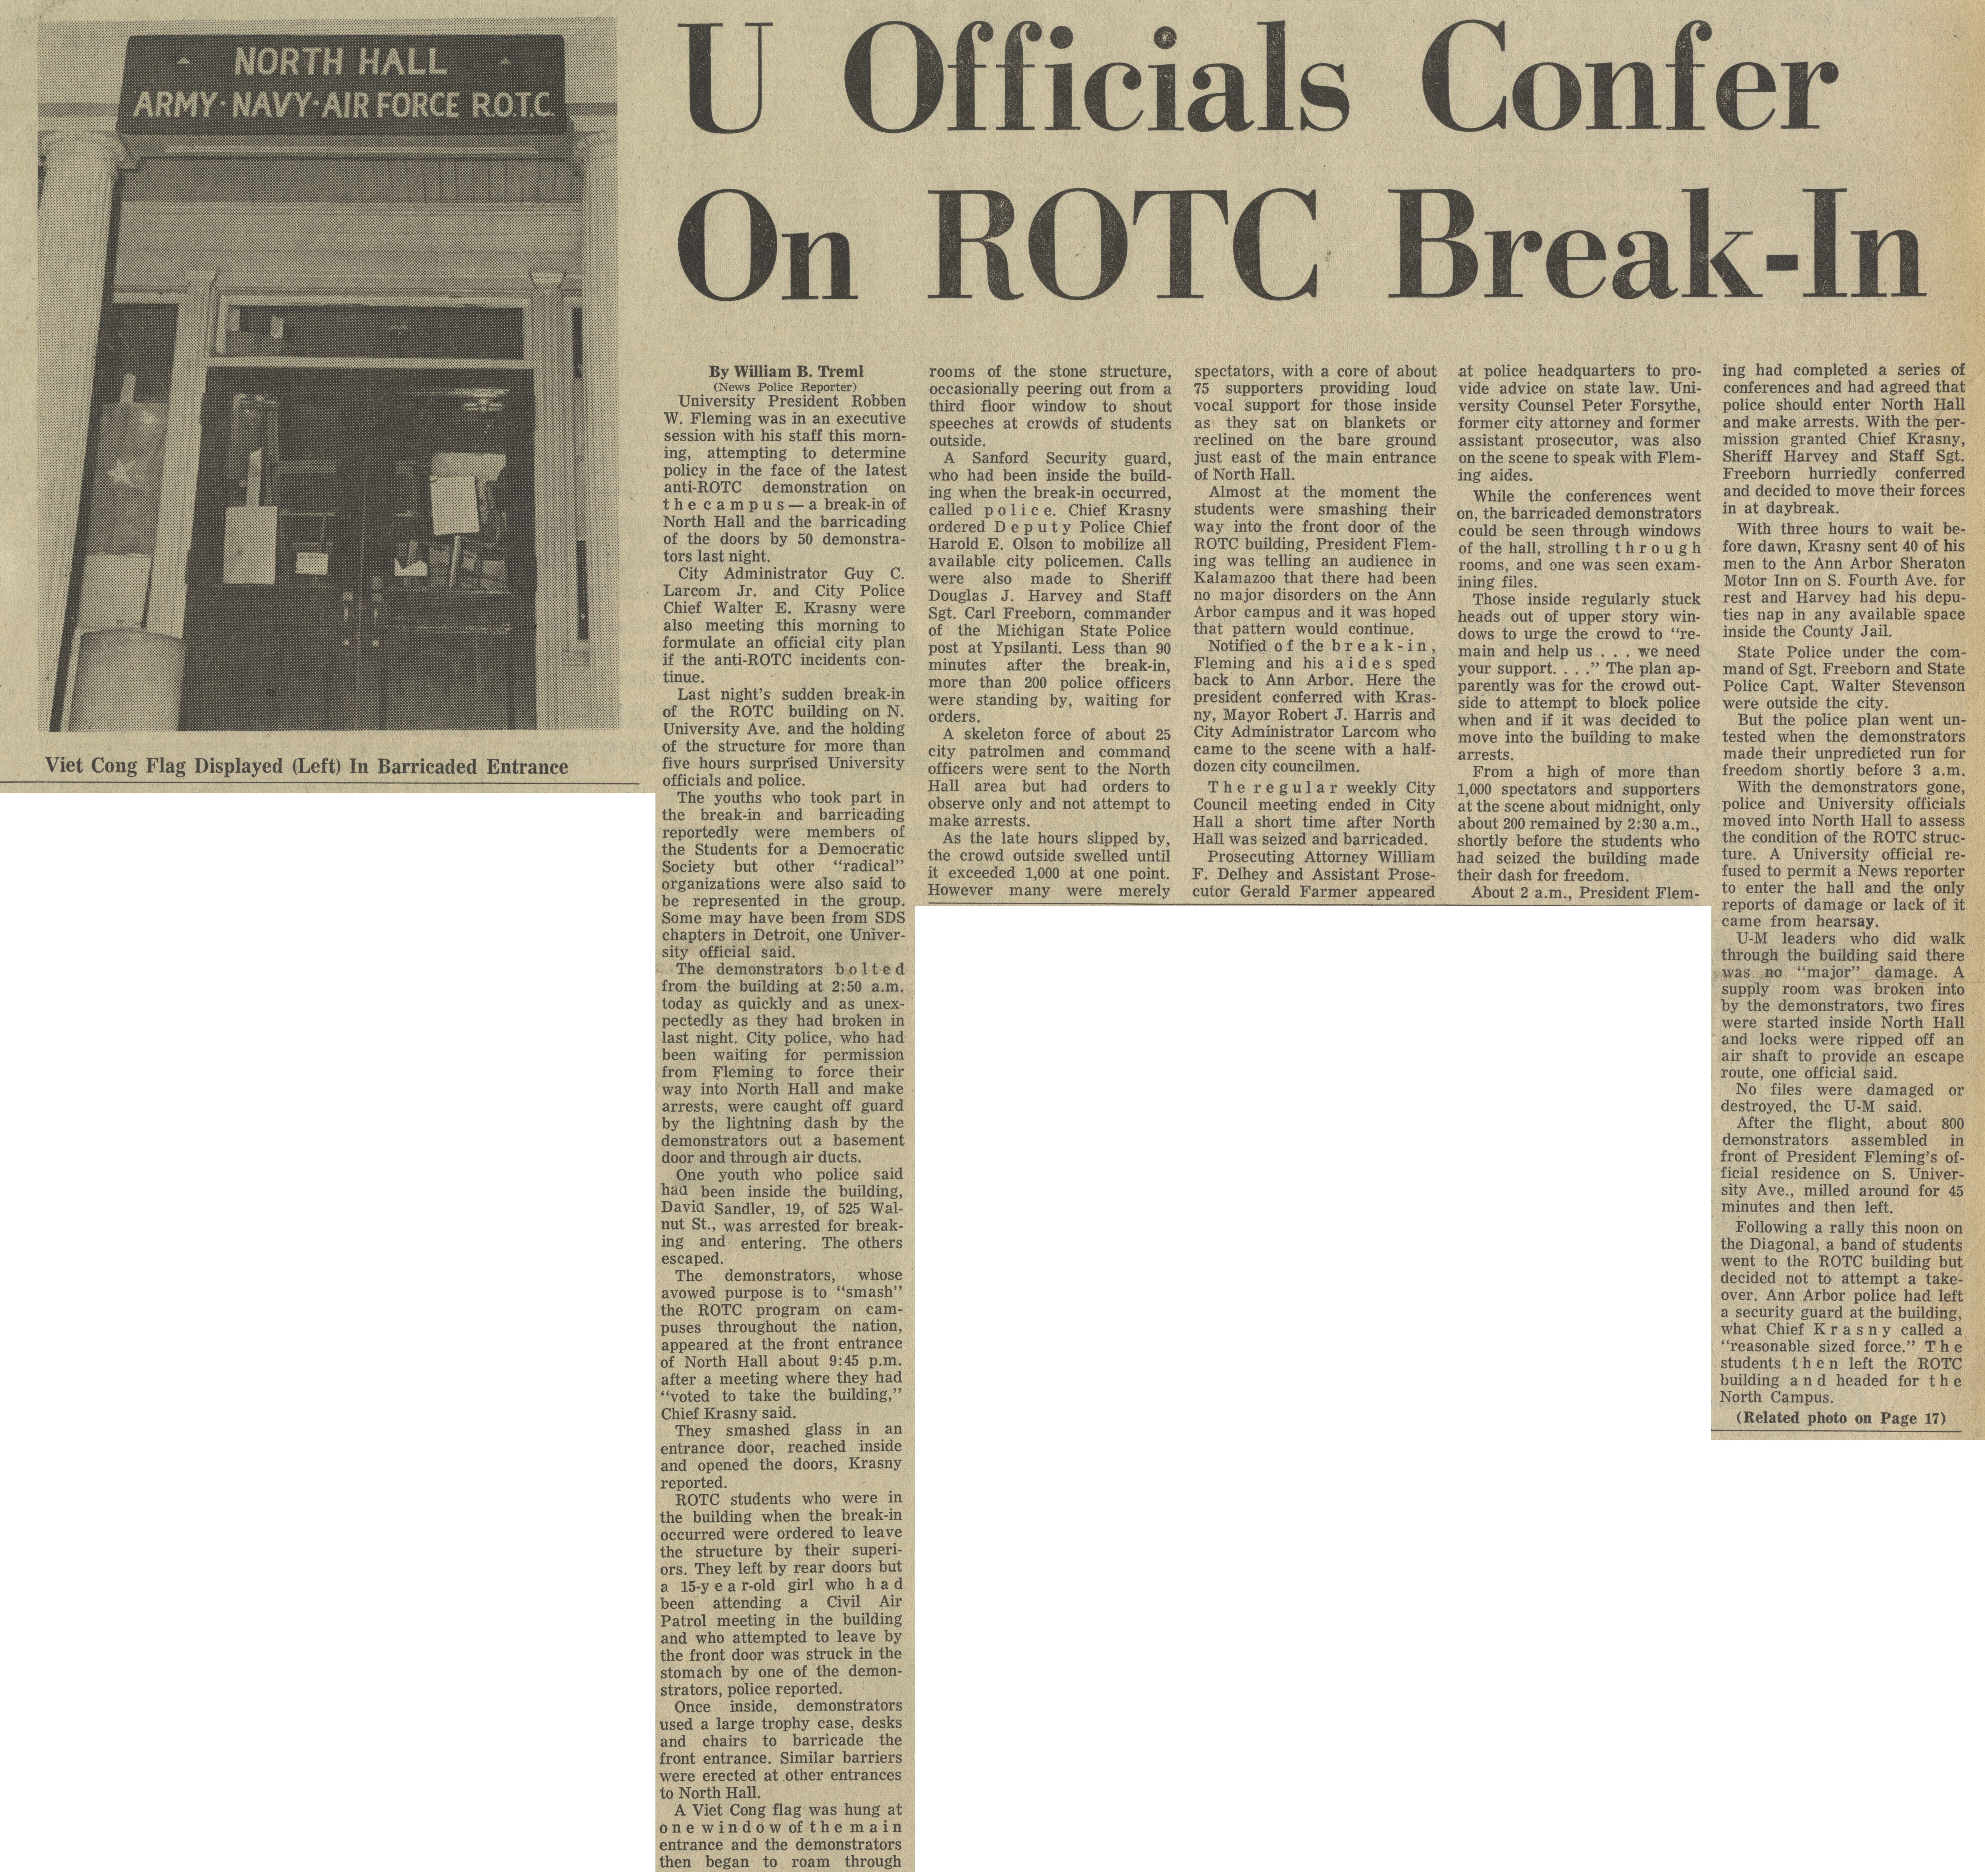 U Officials Confer On ROTC Break-In image